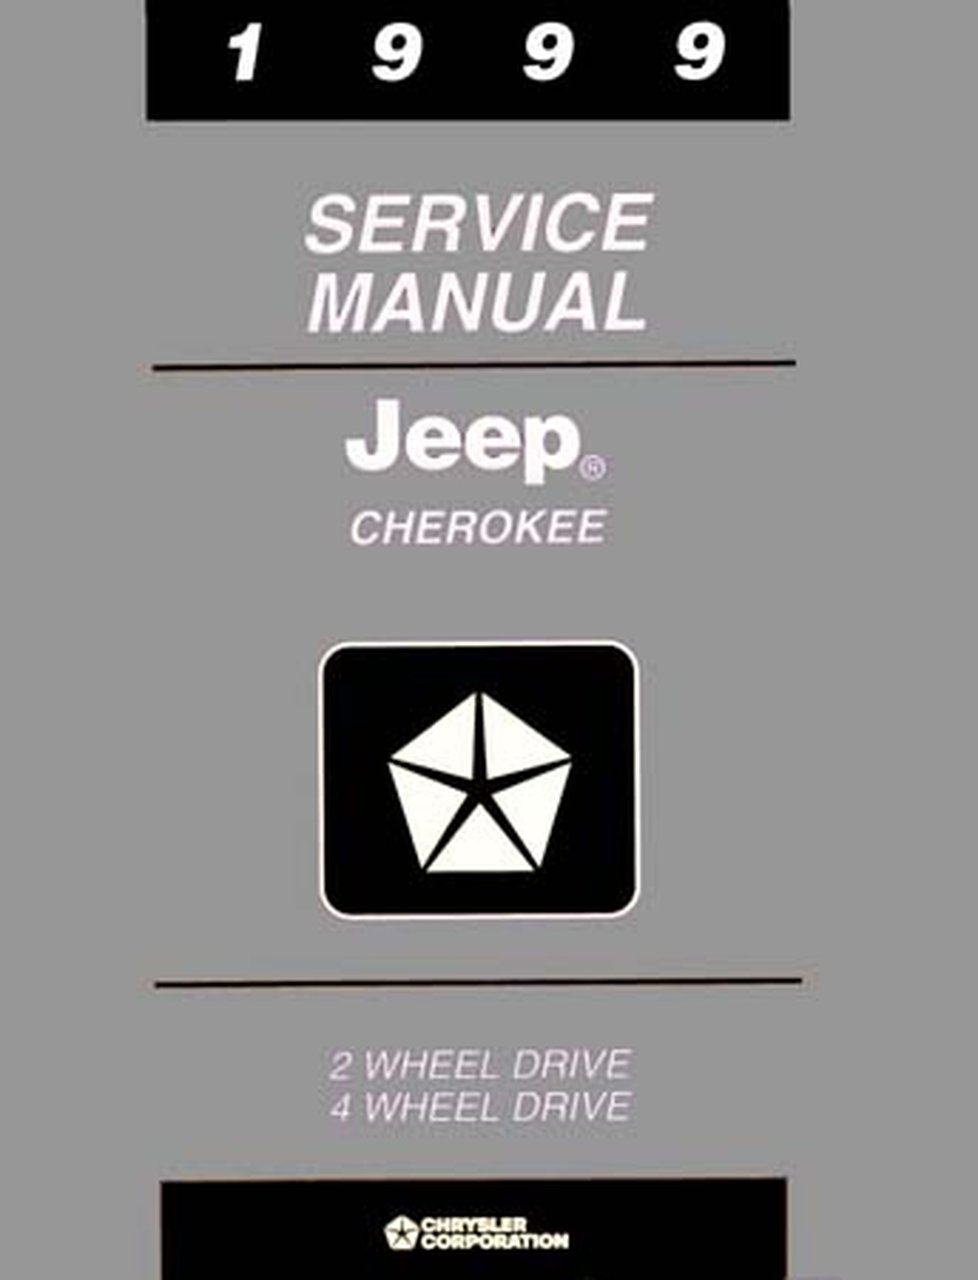 Bishko OEM Repair Maintenance Shop Manual Bound for Jeep